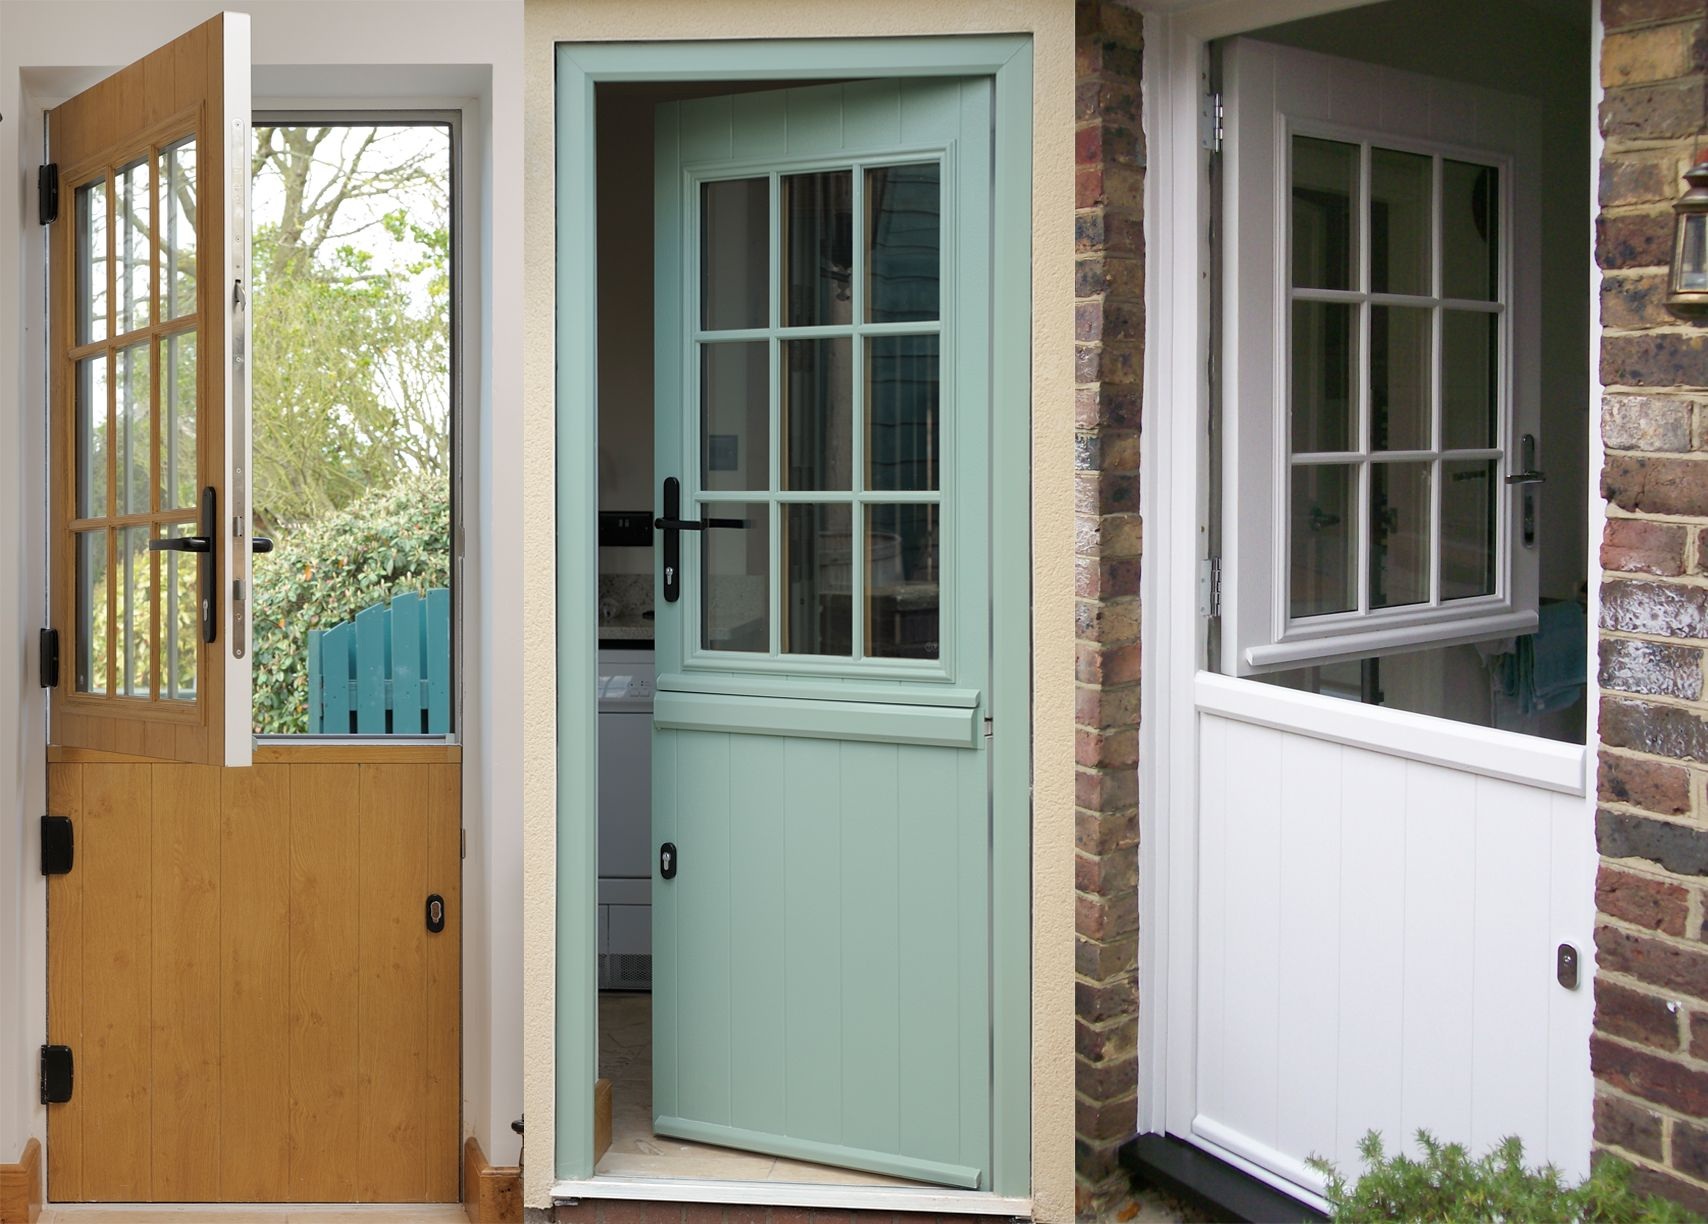 upvc cottage door styles uk - Google Search | For the Home general ...